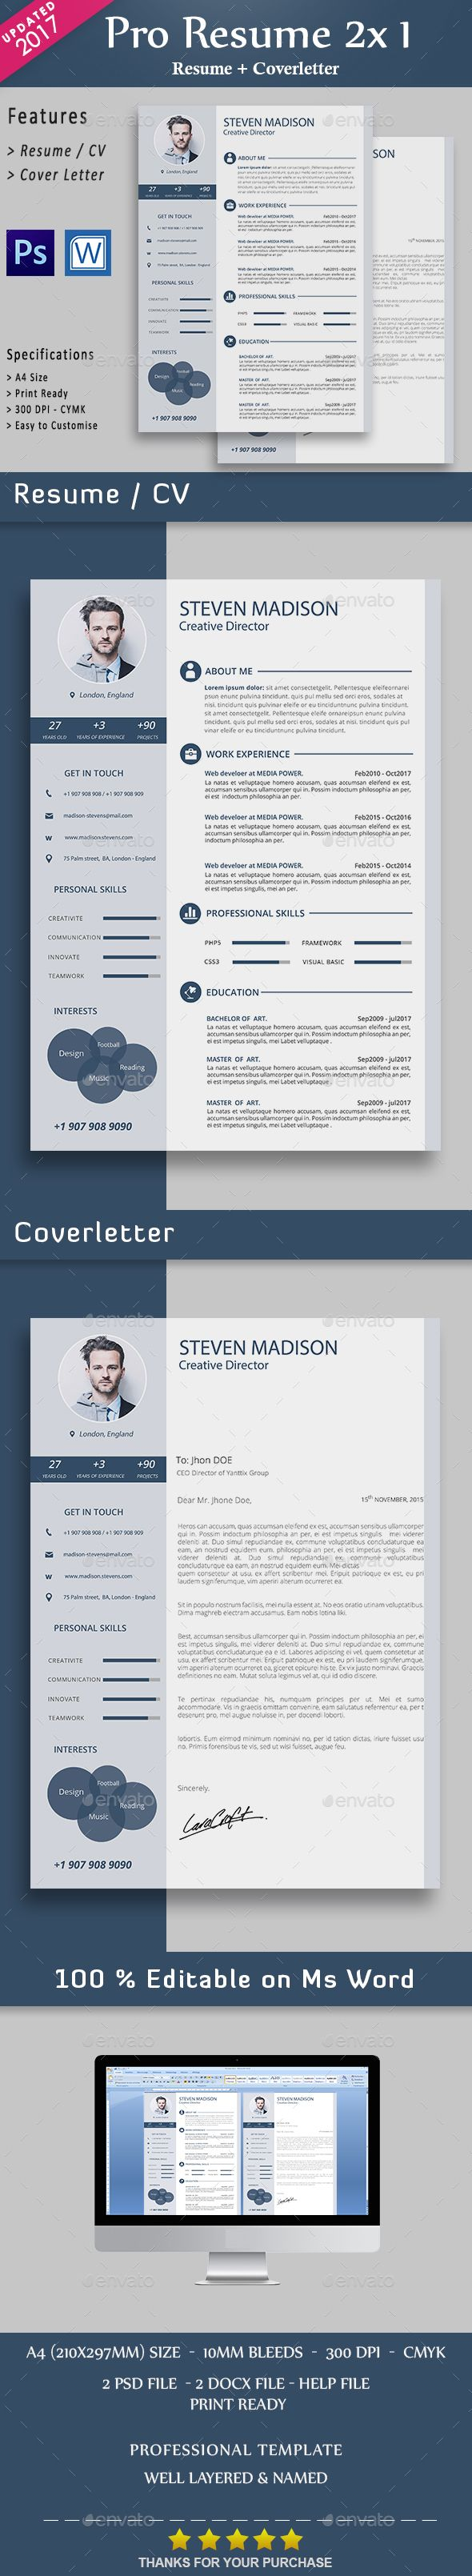 Charming 1.5 Binder Spine Template Small 10 Minute Resume Builder Regular 2 Inch Heart Template 2 Page Resume Design Old 2014 Calendar Template Monthly Blue2015 Calendar Word Template 25  Best Ideas About Resume Words On Pinterest | Resume, Resume ..